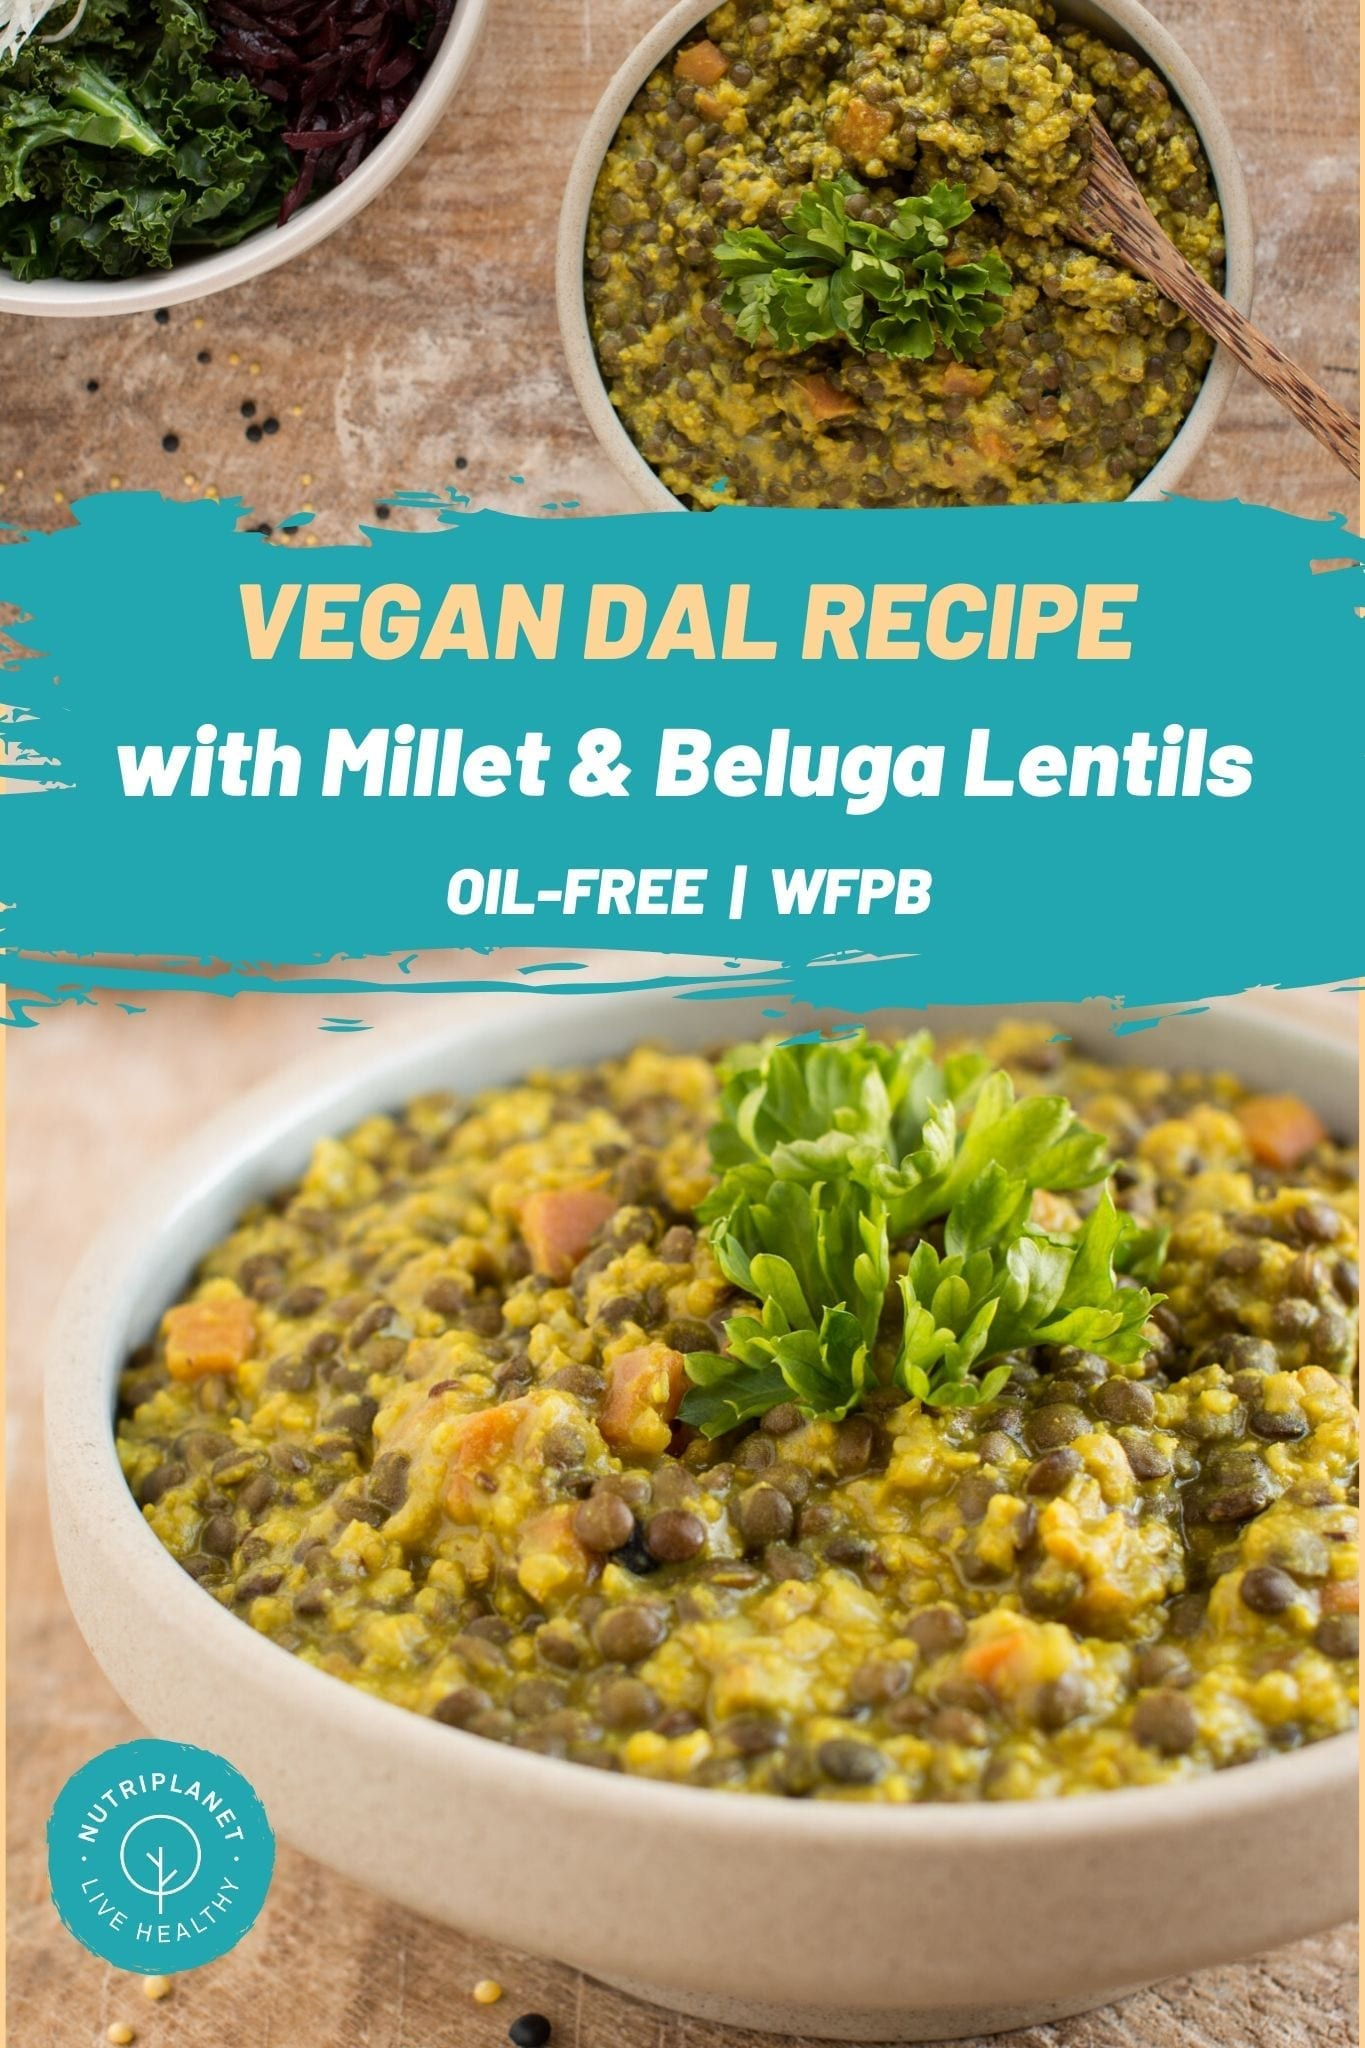 Easy and delicious oil-free vegan dal recipe with millet and black lentils.